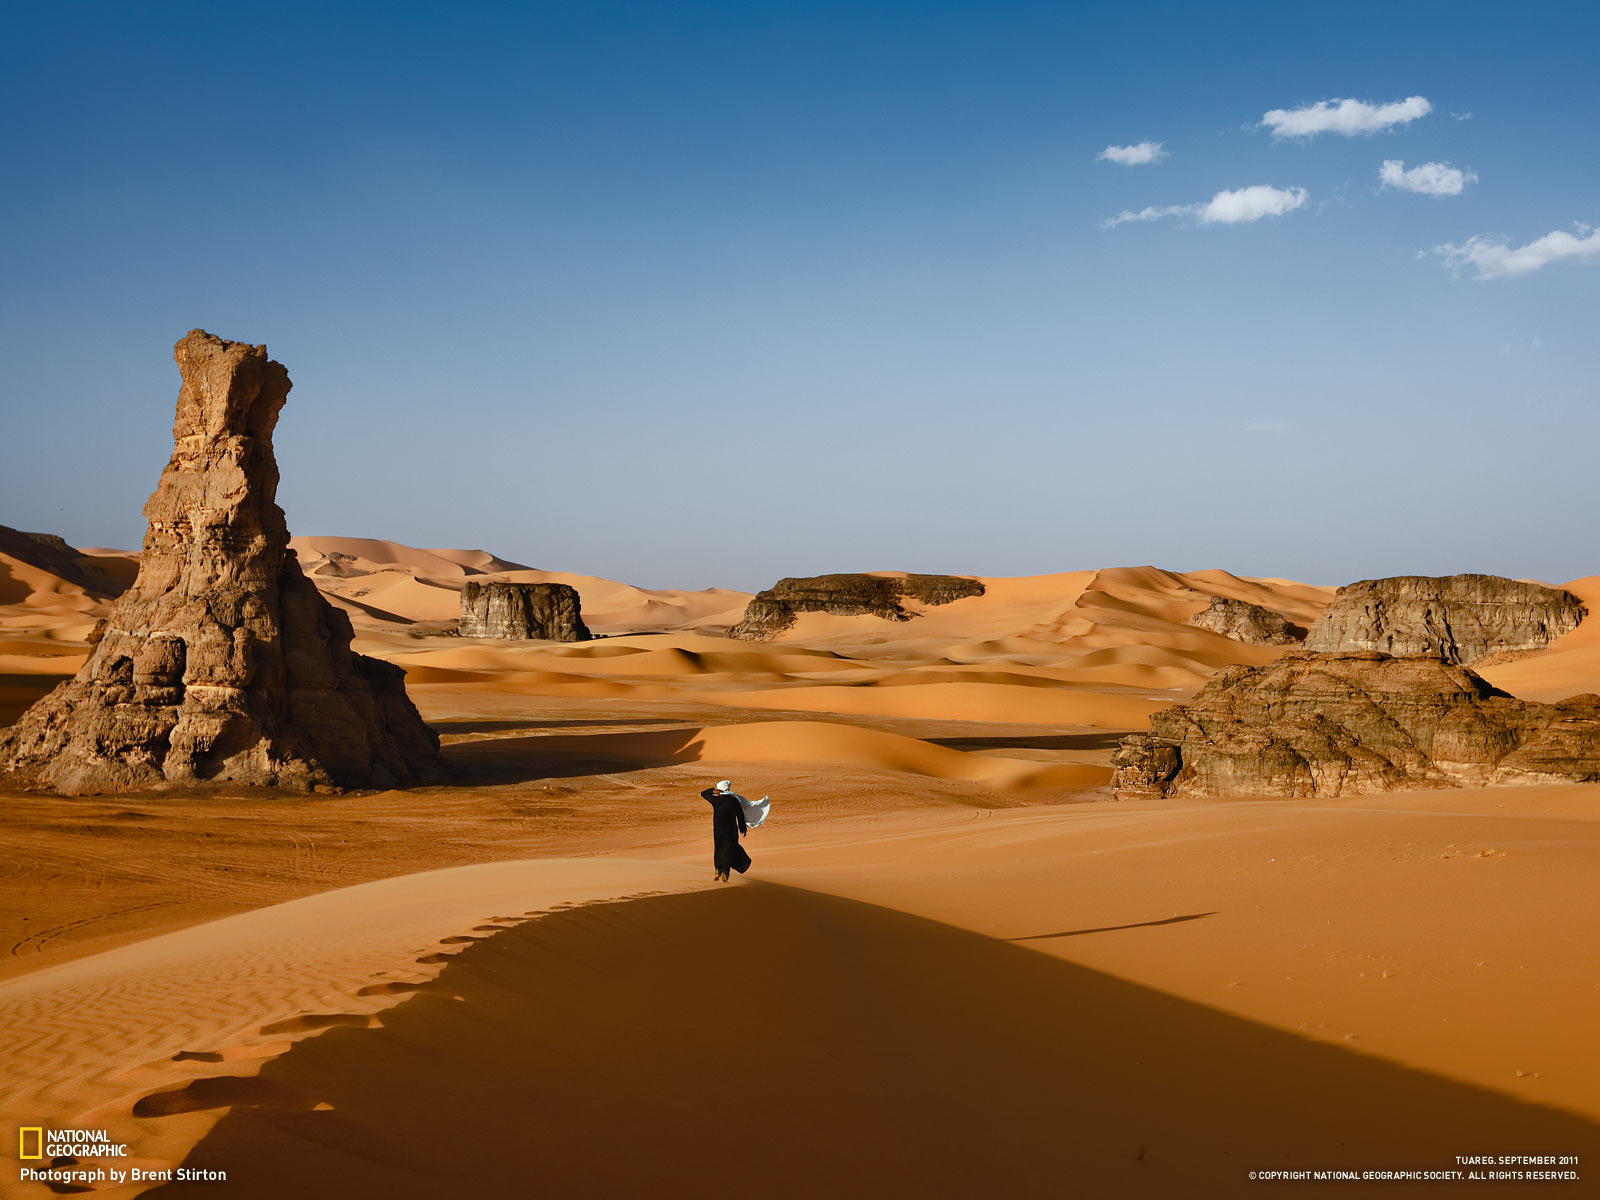 Wallpaper National Geographic Download wallpaper202 1600x1200